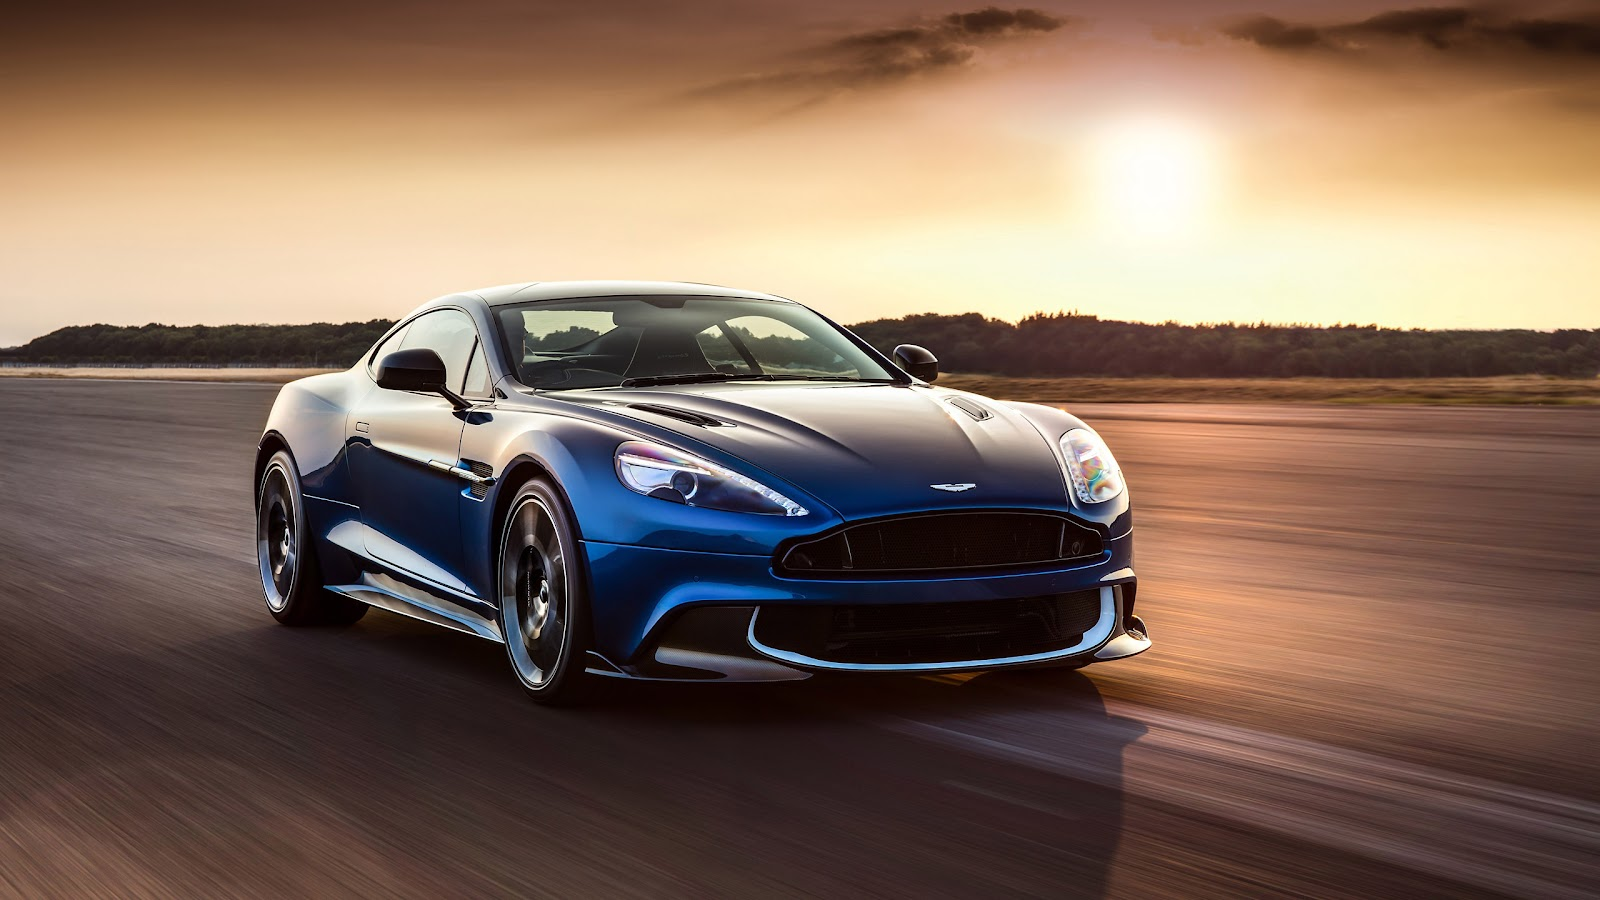 2017-aston-martin-vanquish-s-wallpaper-hd-car-wallpapers-14.jpg